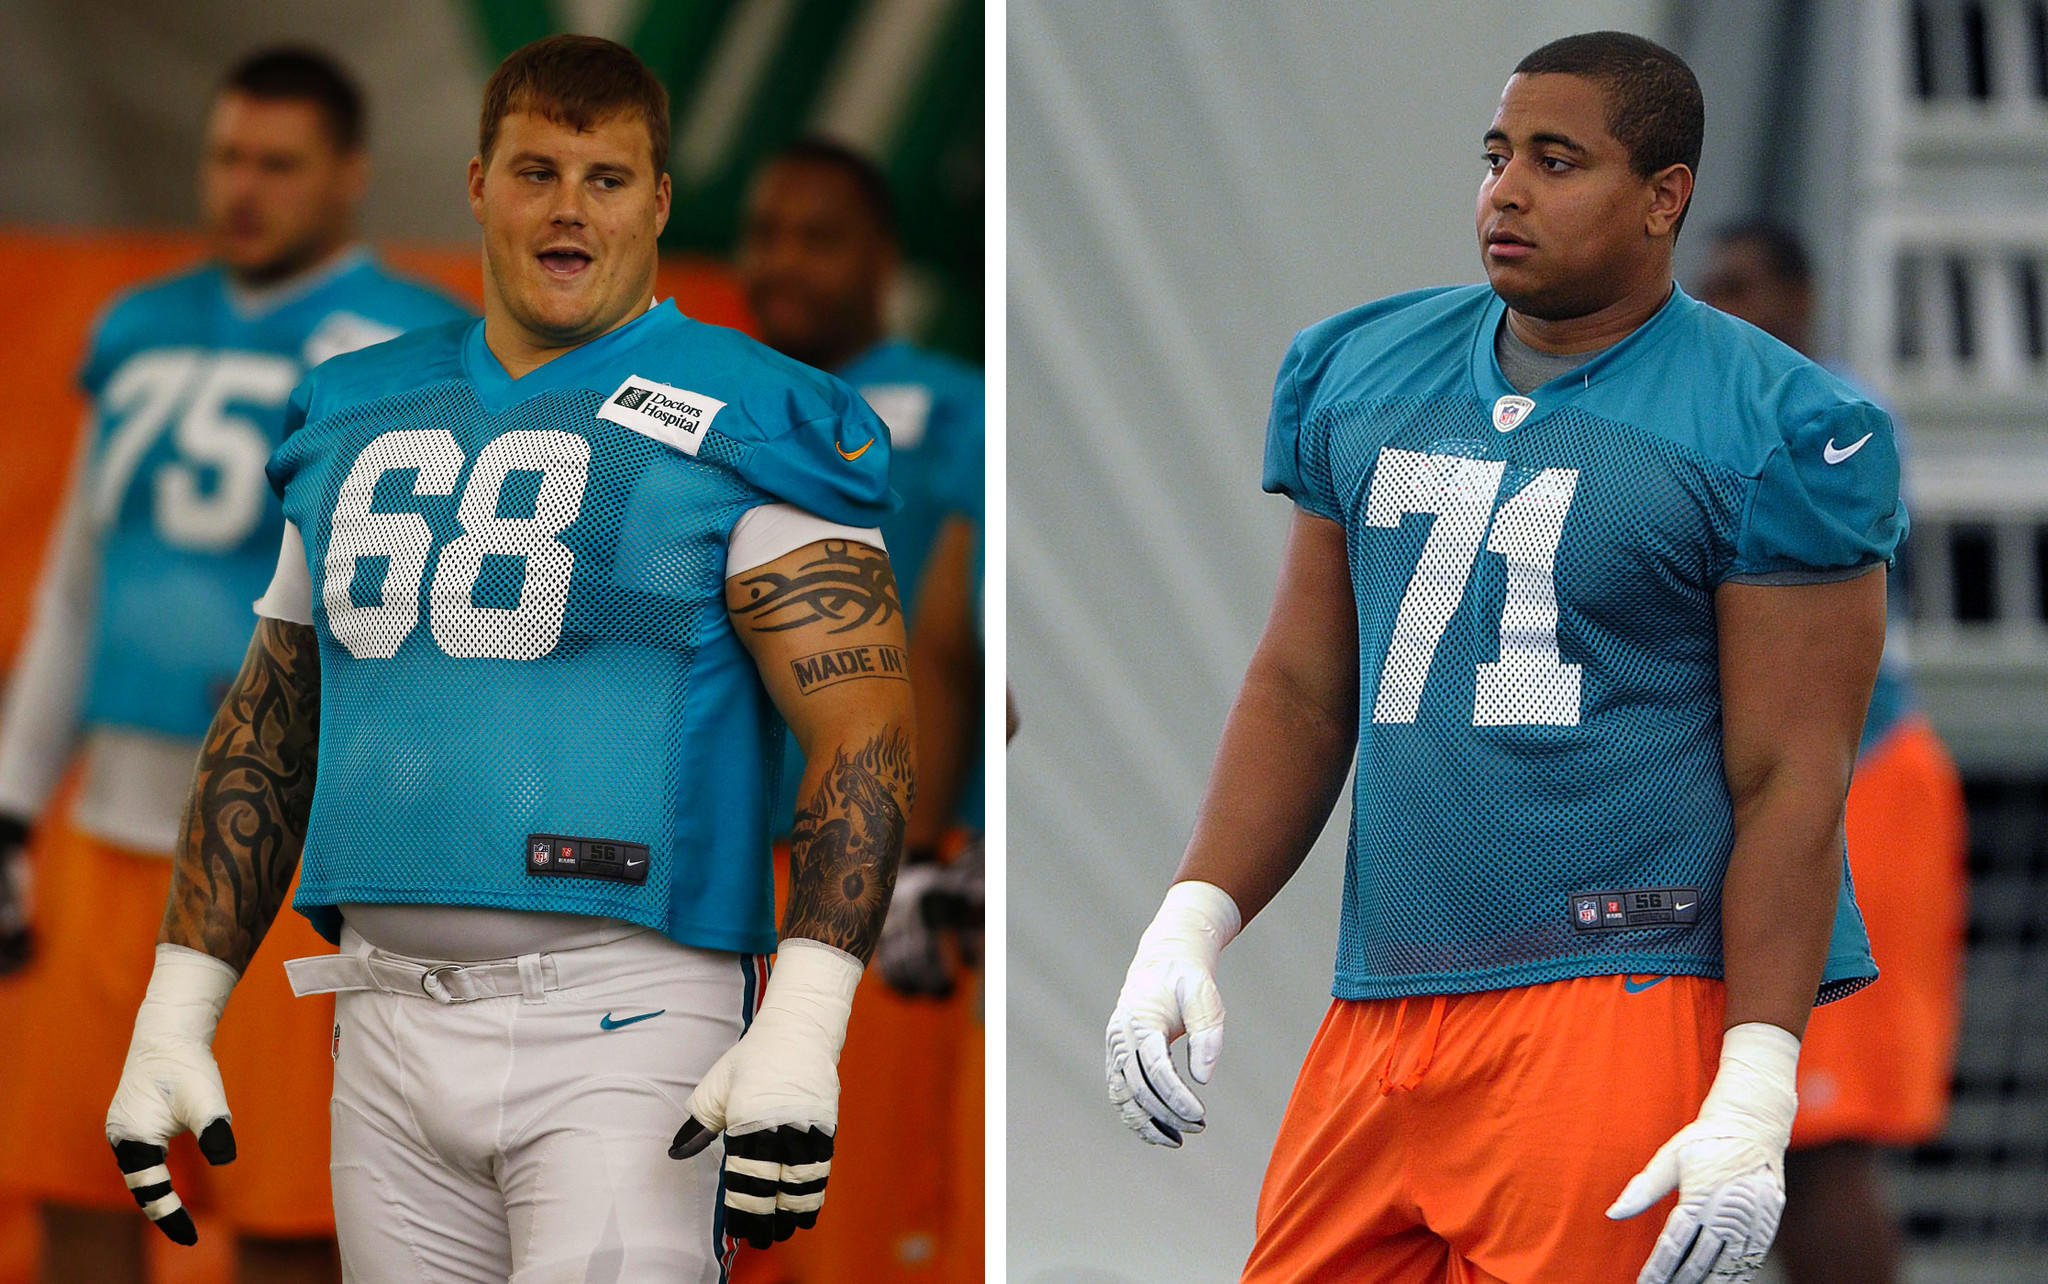 Composite image of Miami Dolphins playesr Richie Incognito (68) and Jonathan Martin.